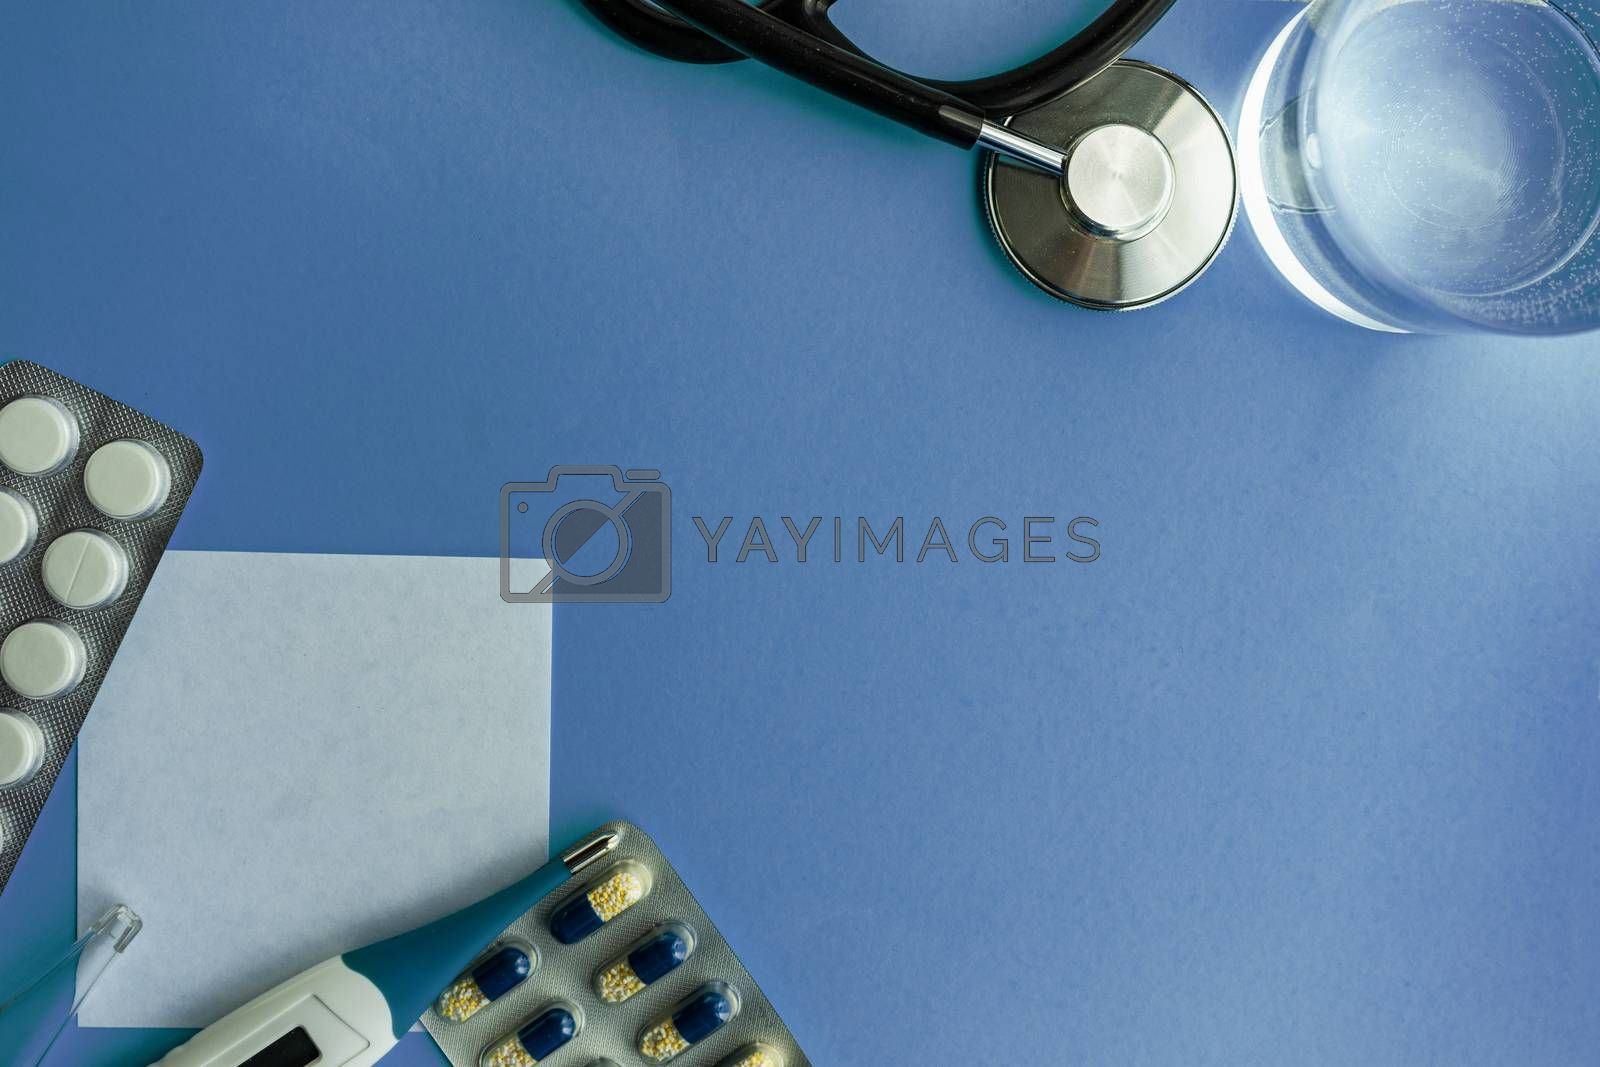 COVID-19 virus concept with glass of water and medicines on pastel background with copy space